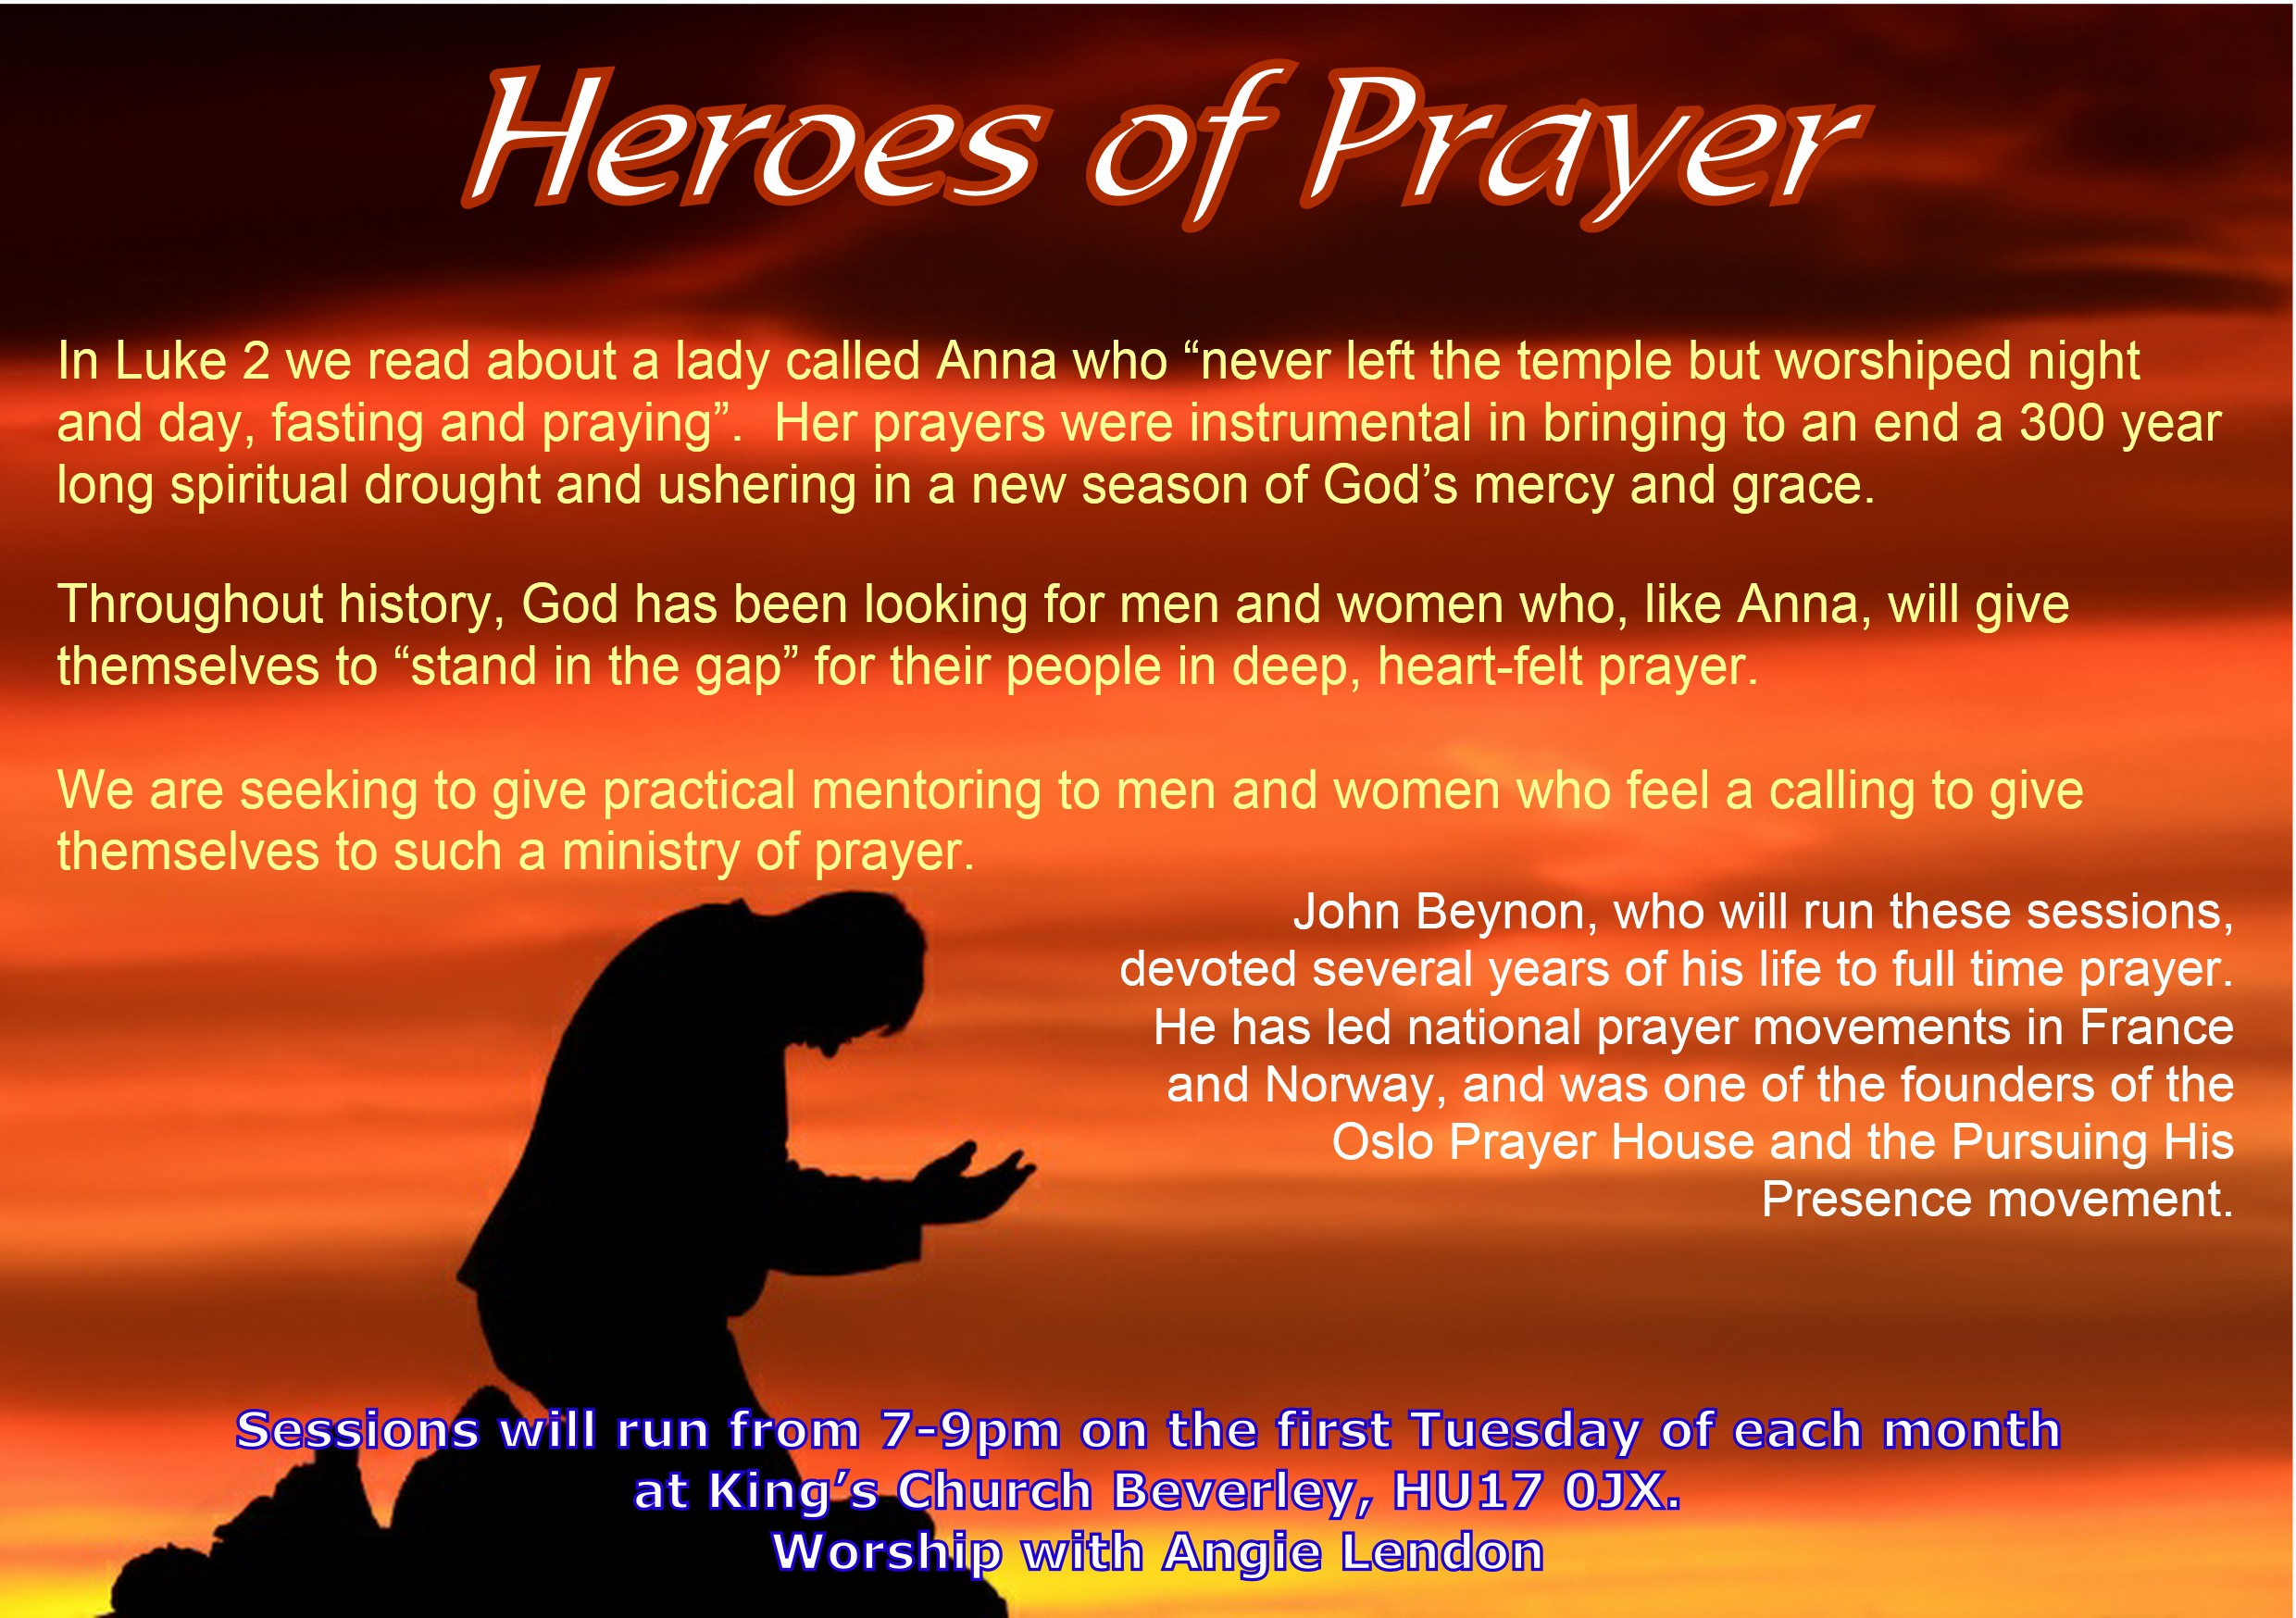 Heroes of prayer